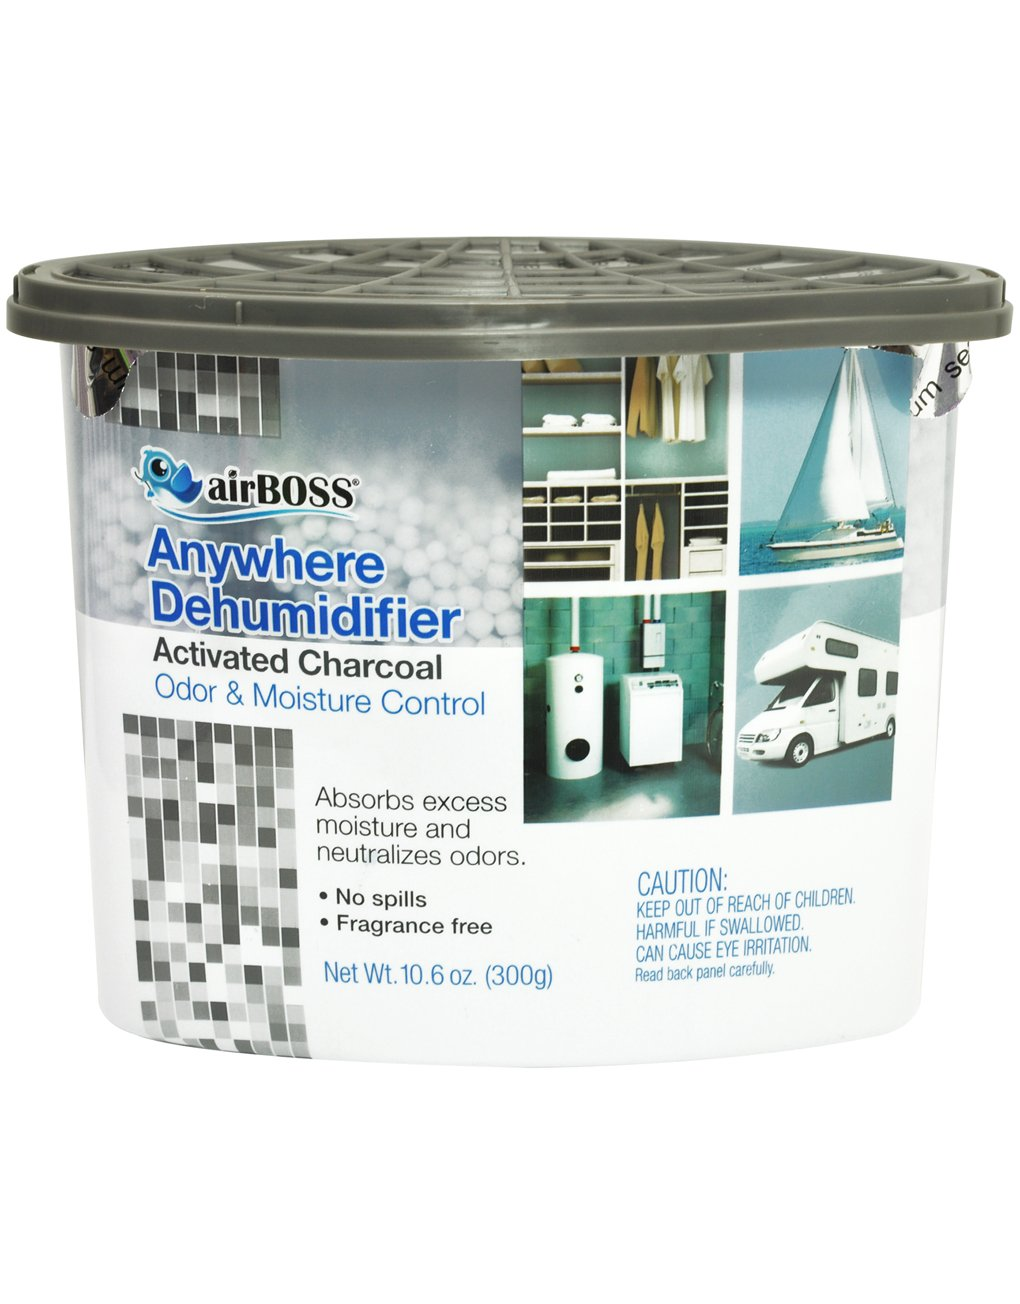 airBOSS Anywhere Dehumidifier with Activated Charcoal